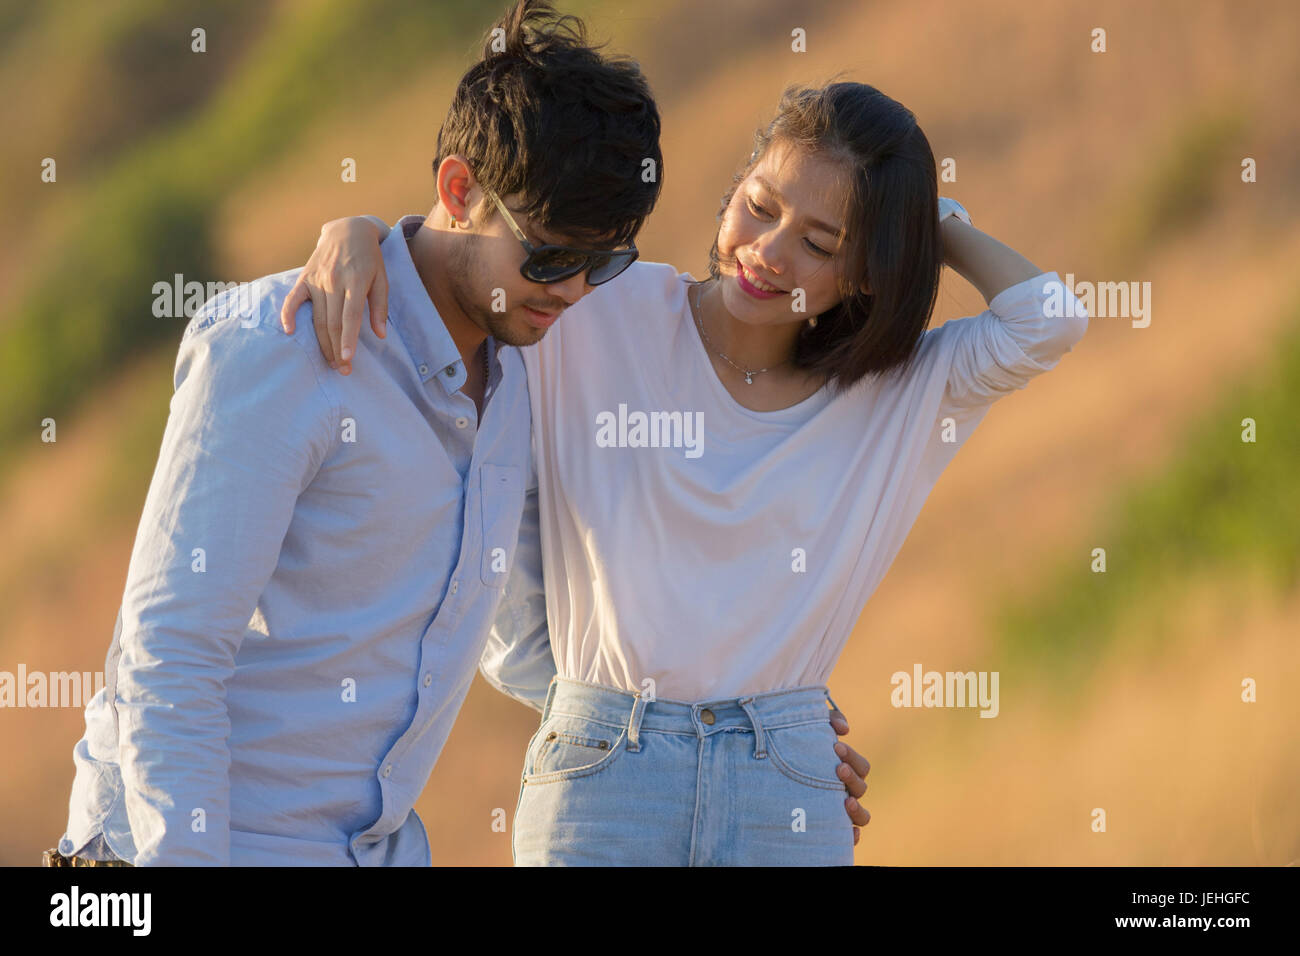 couples younger asian man and woman relaxing time on vacation destination traveling - Stock Image